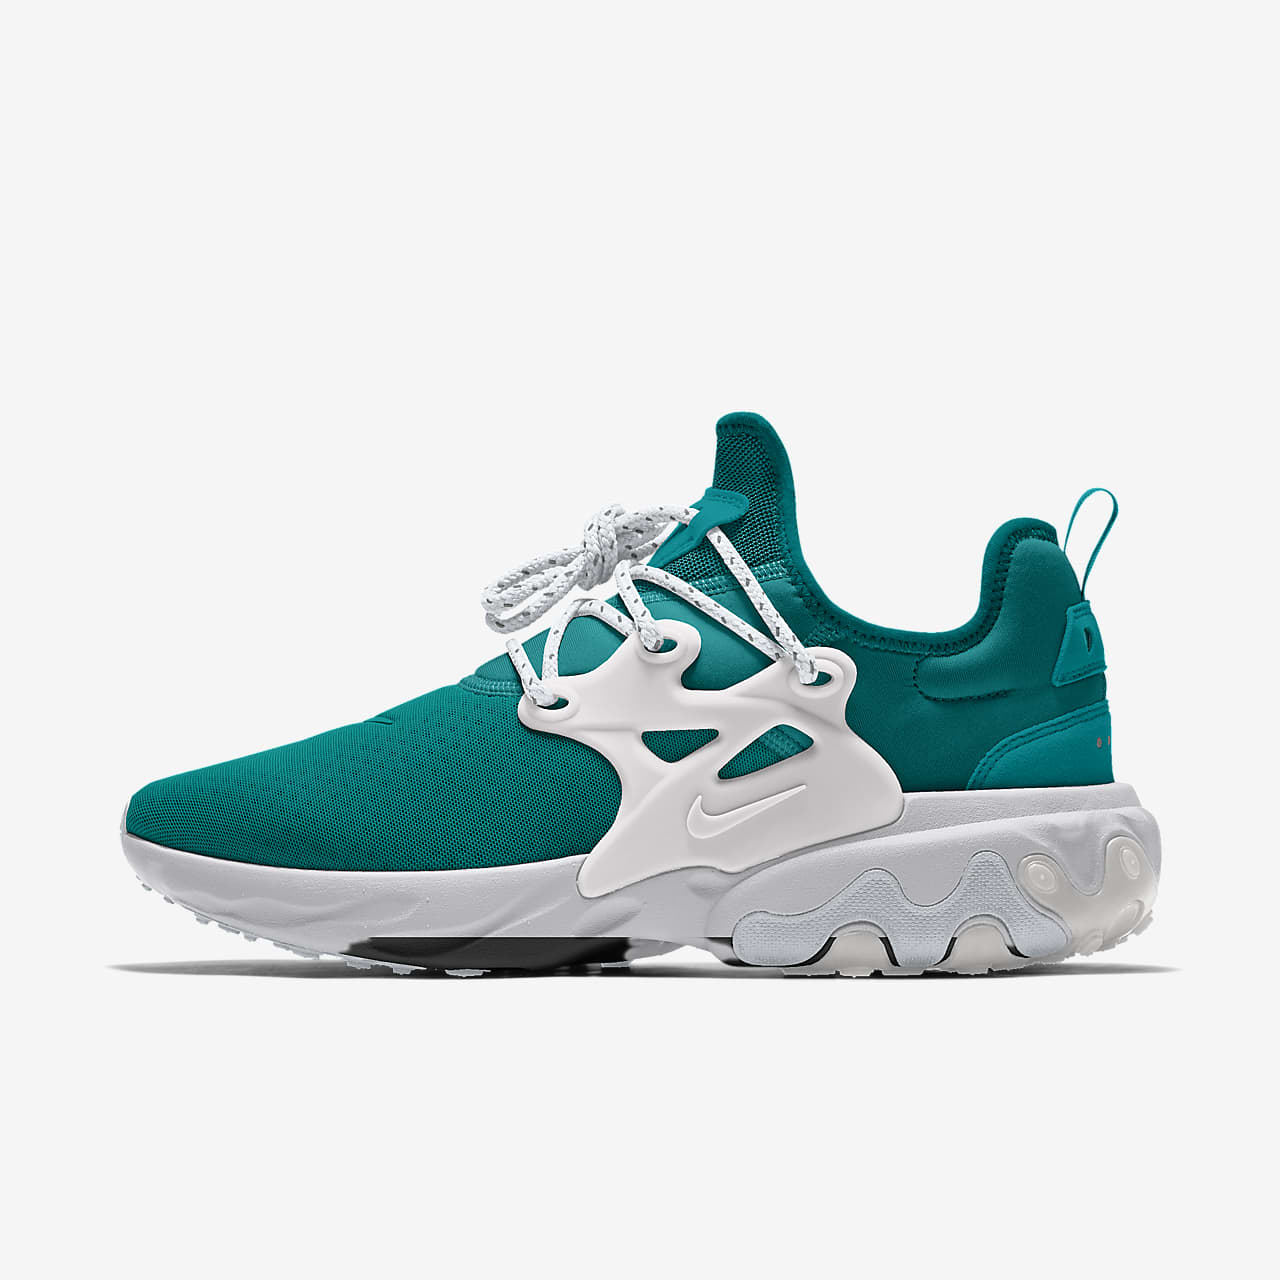 Scarpa personalizzabile Nike React Presto By You - Donna